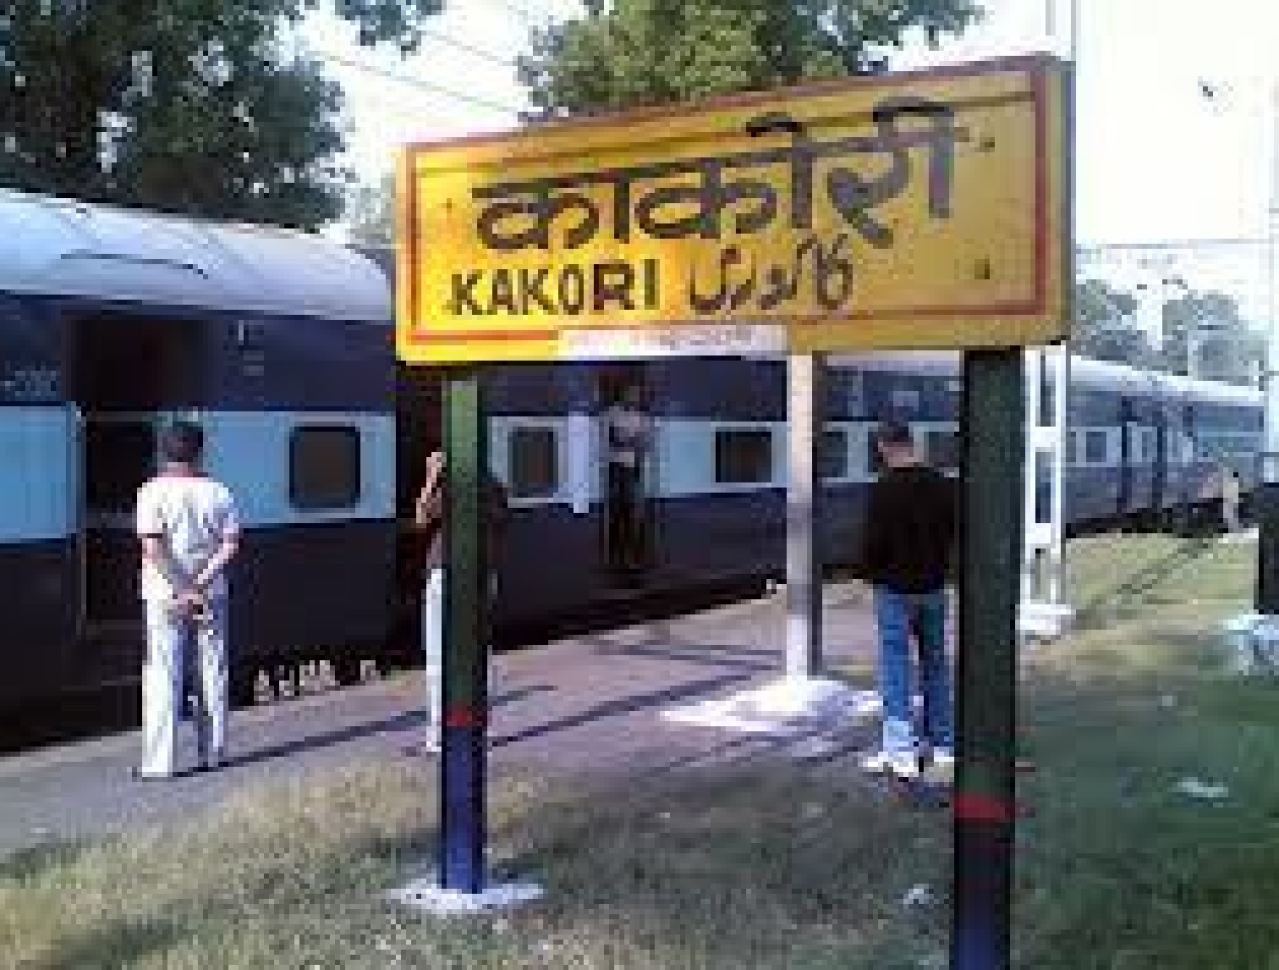 The railway station at Kakori.